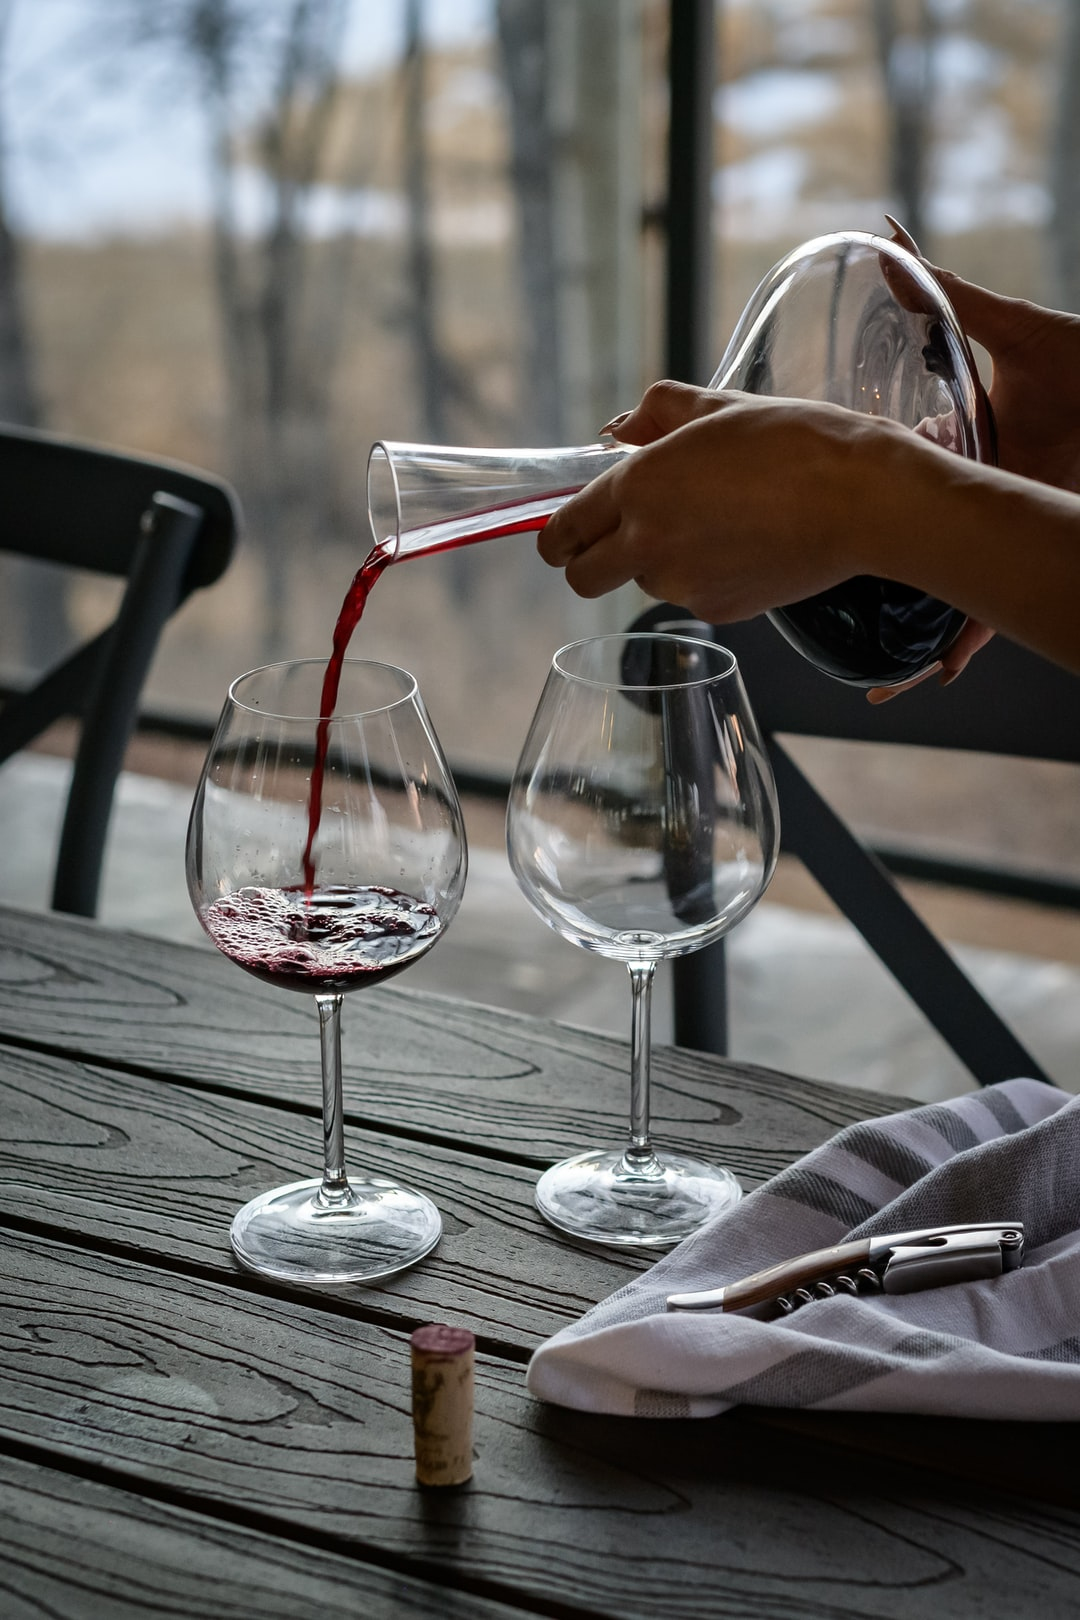 Pouring wine into glass from a carafe in an outdoor fine dining setting